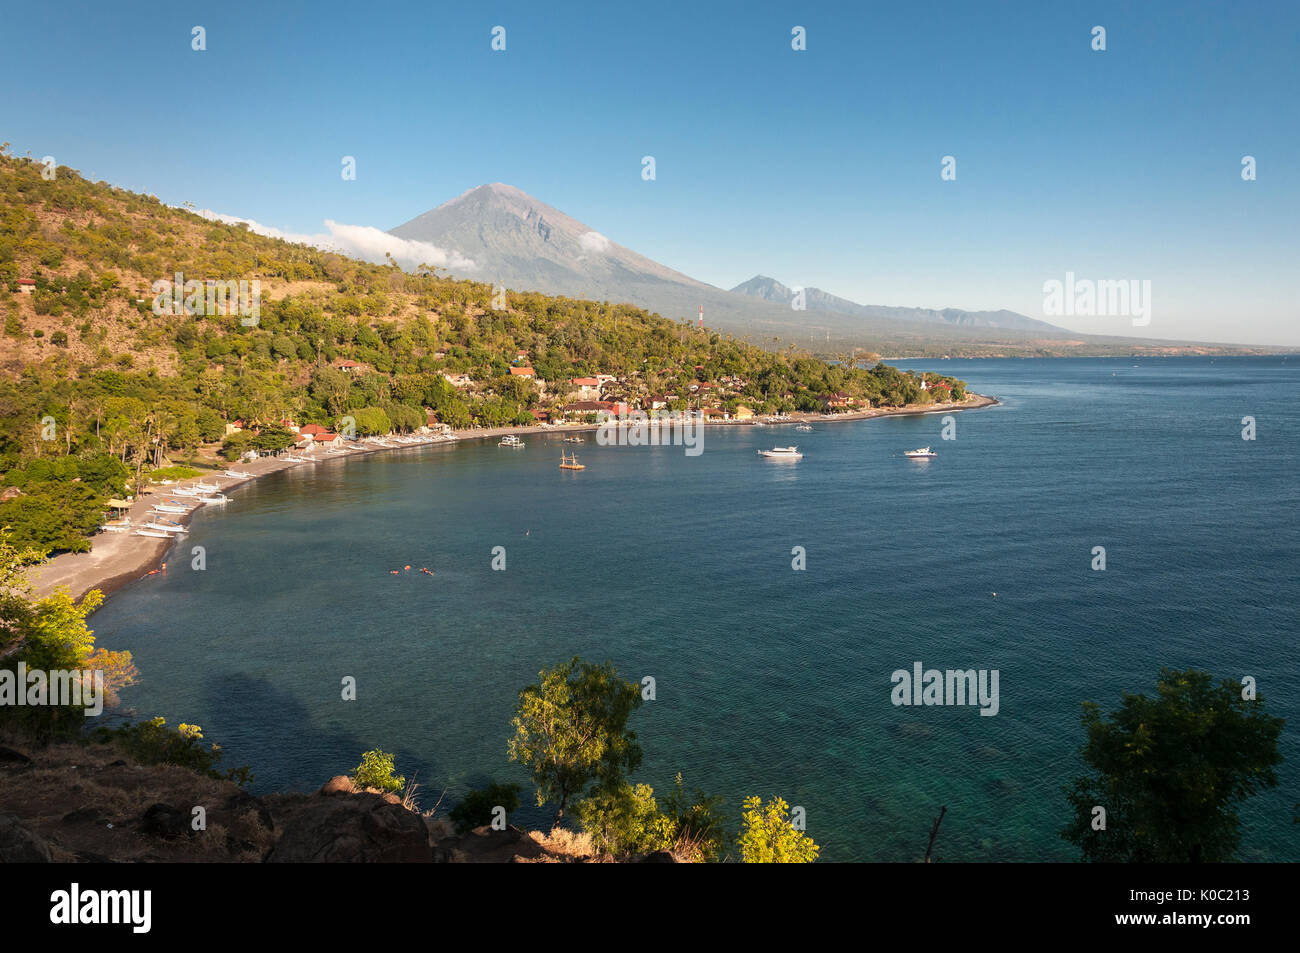 Looking across Jemeluk bay at Amed  with Gunung Agung volcano in the background, Eastern Bali, Indonesia. - Stock Image